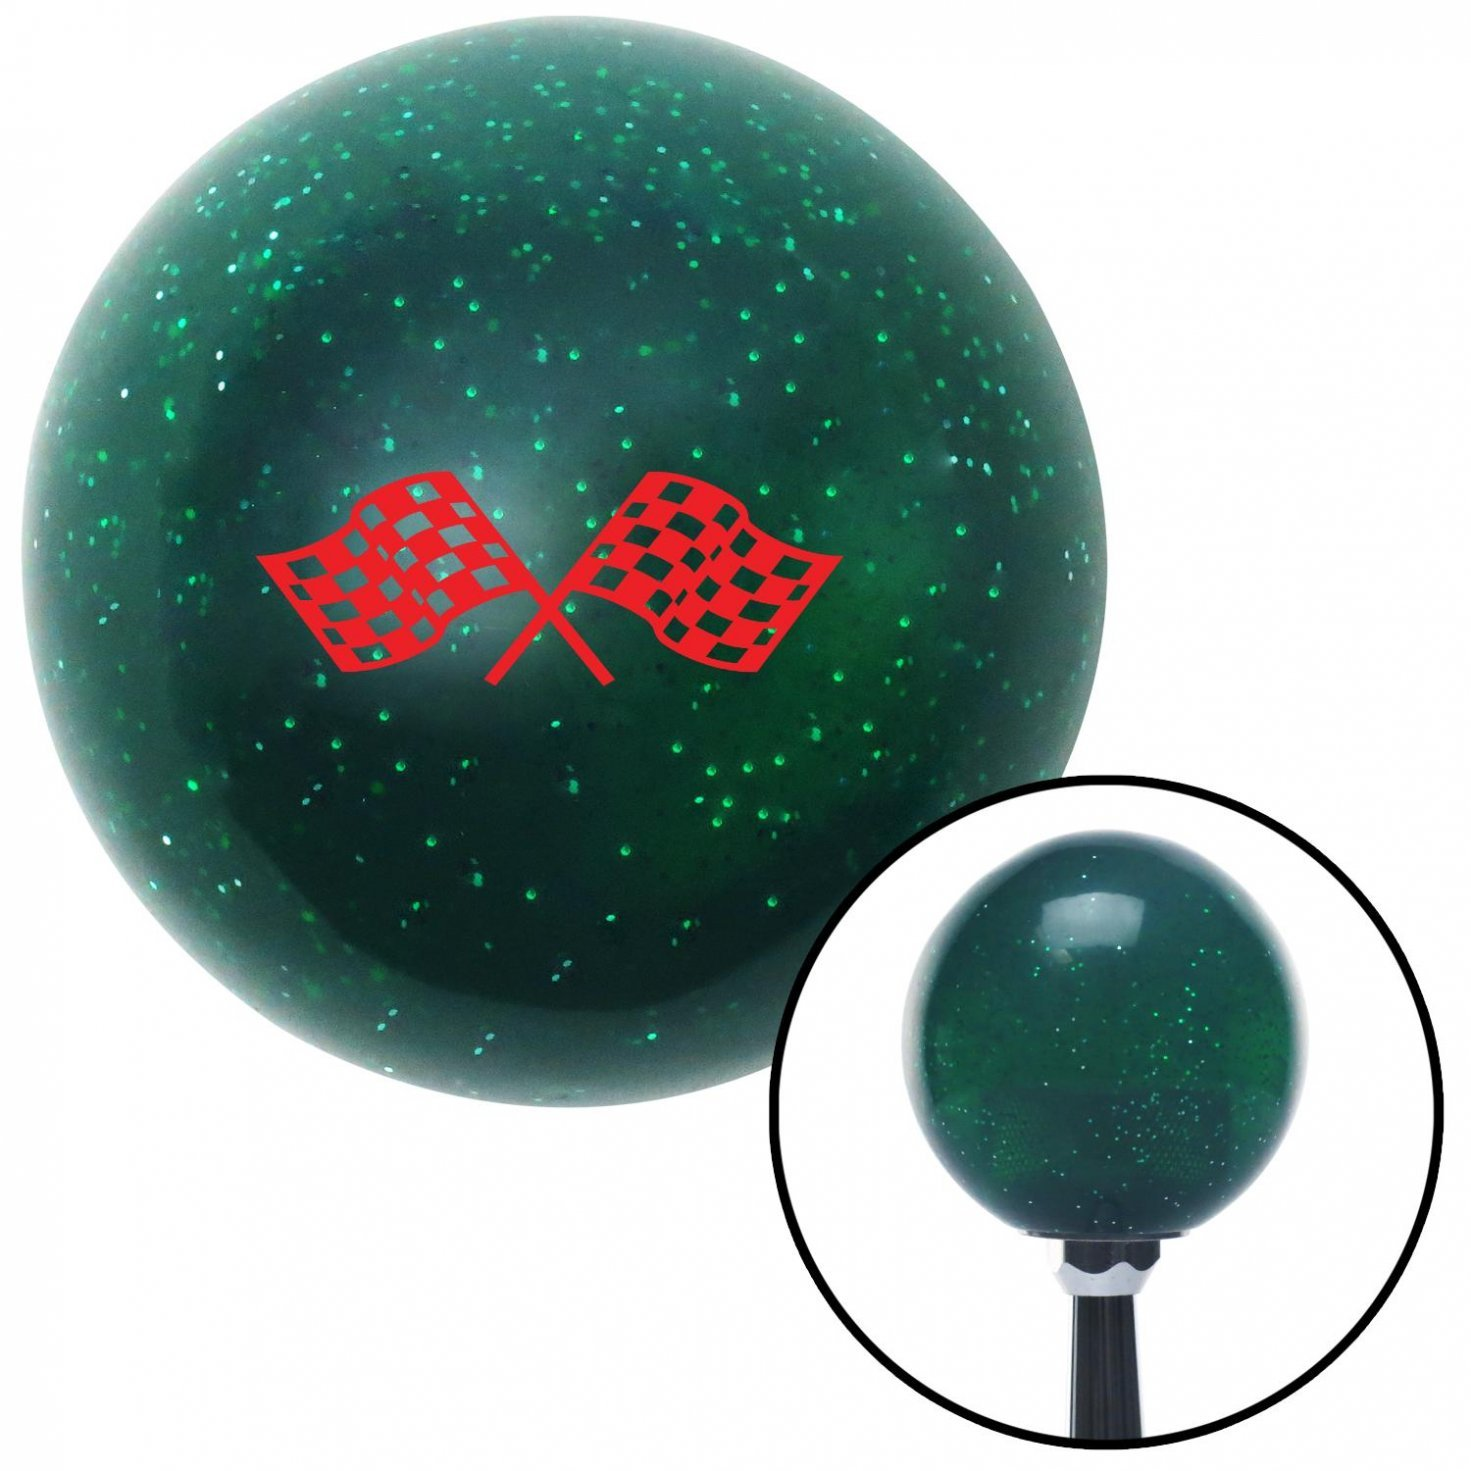 Red Checkered Racing Flags American Shifter 62279 Green Metal Flake Shift Knob with 16mm x 1.5 Insert